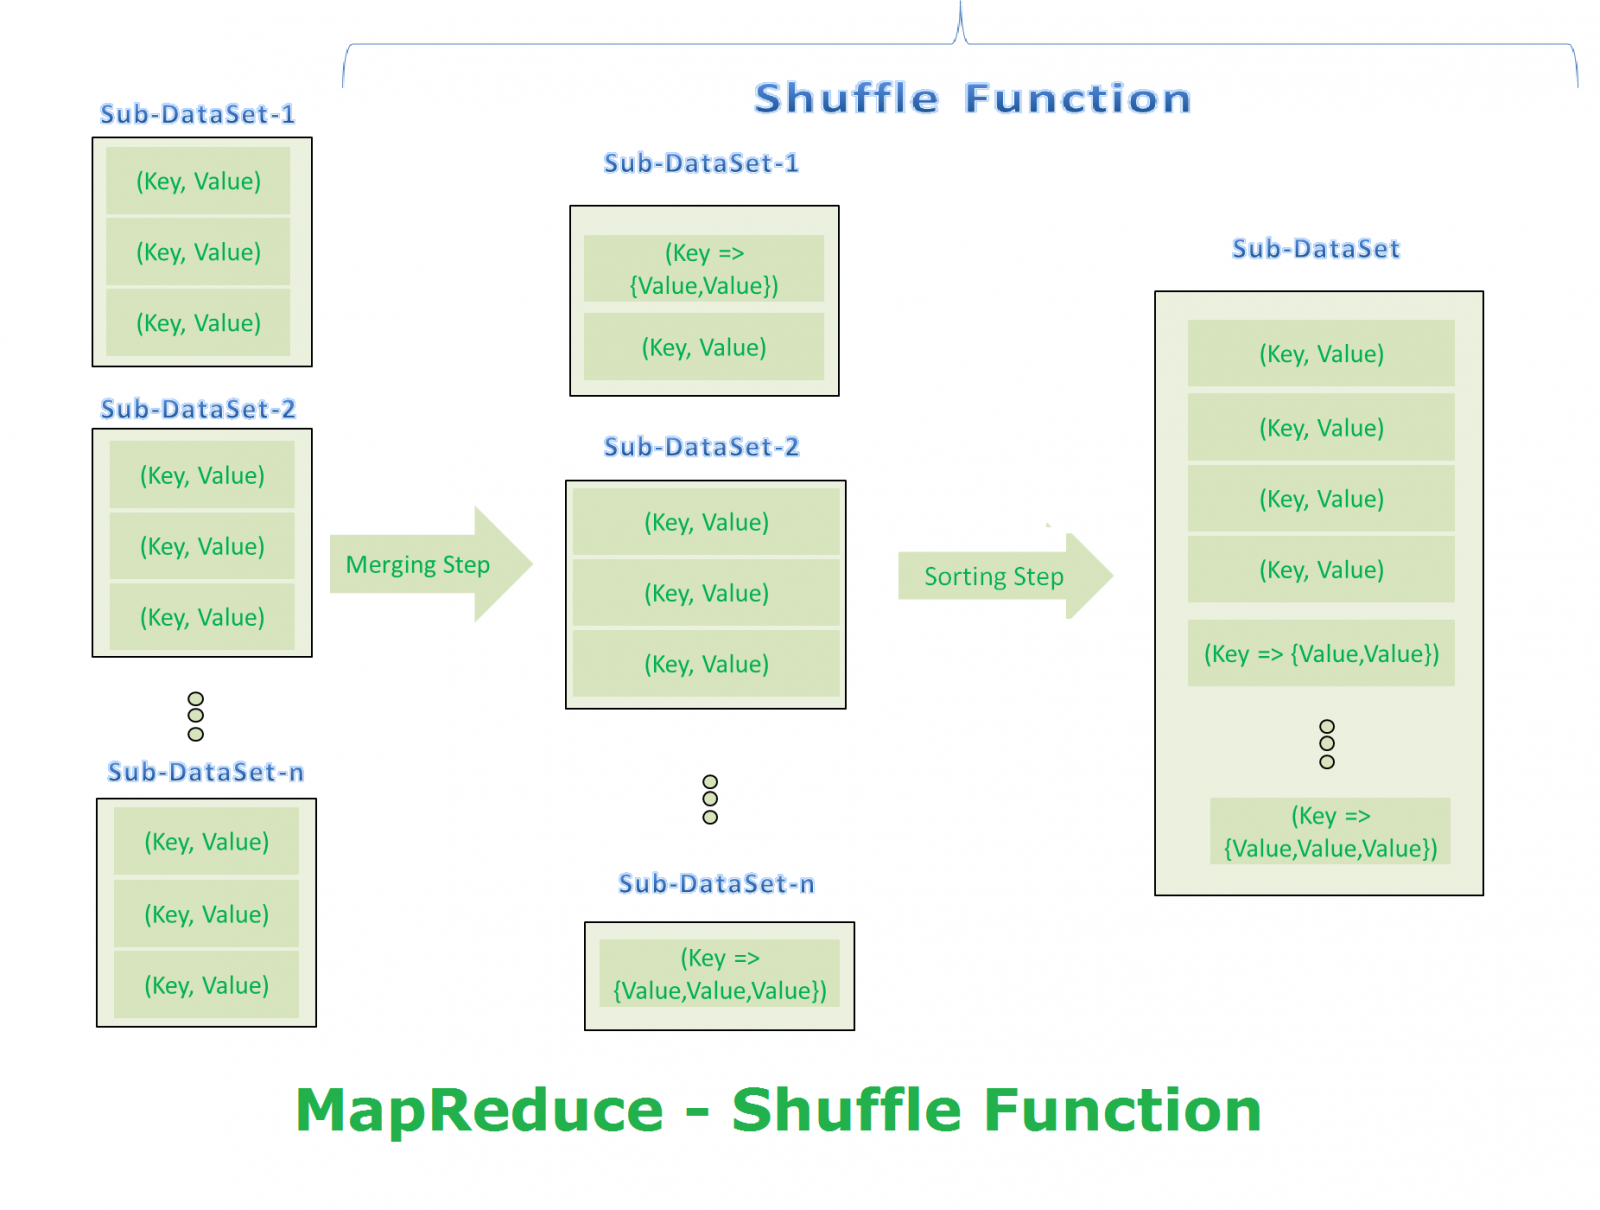 mapreduce paper For example, the web-search index-building system described in the mapreduce paper 4 is a sequence of mapreduce phases where the output of most phases is consumed by one or two subsequent mapreduce phases.